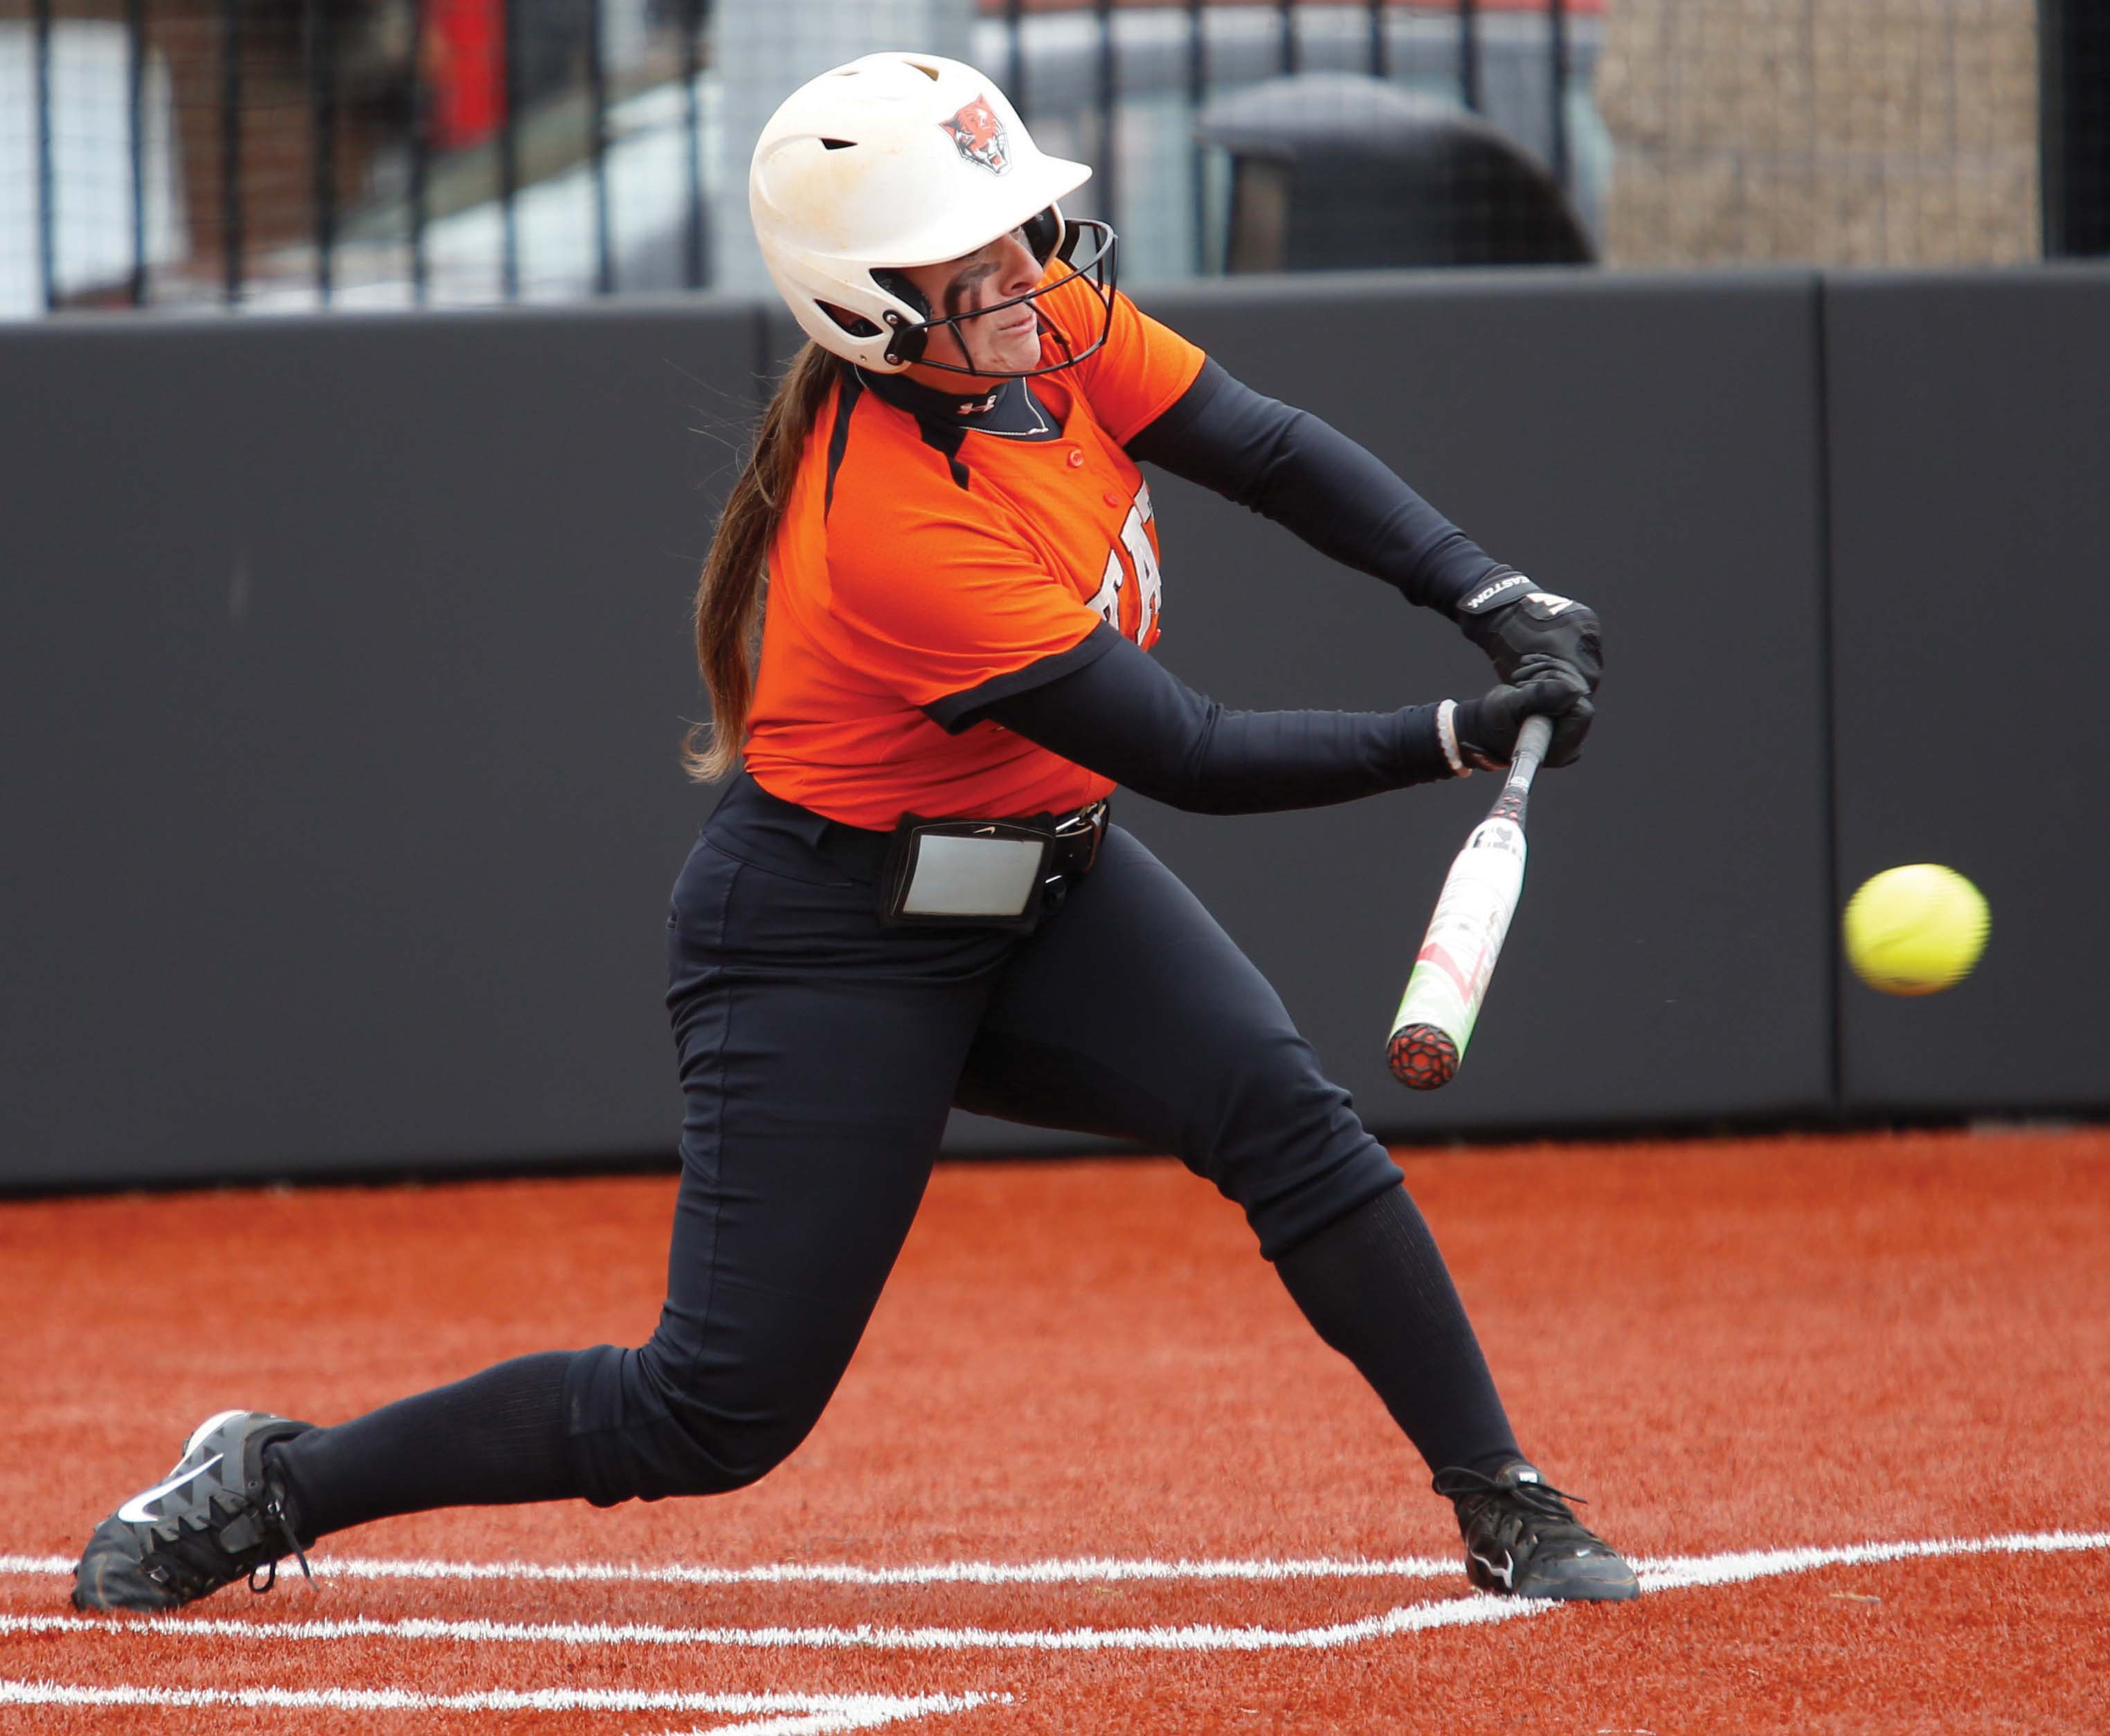 Stephanie Novo went 10 for 22 with two home runs over the week.